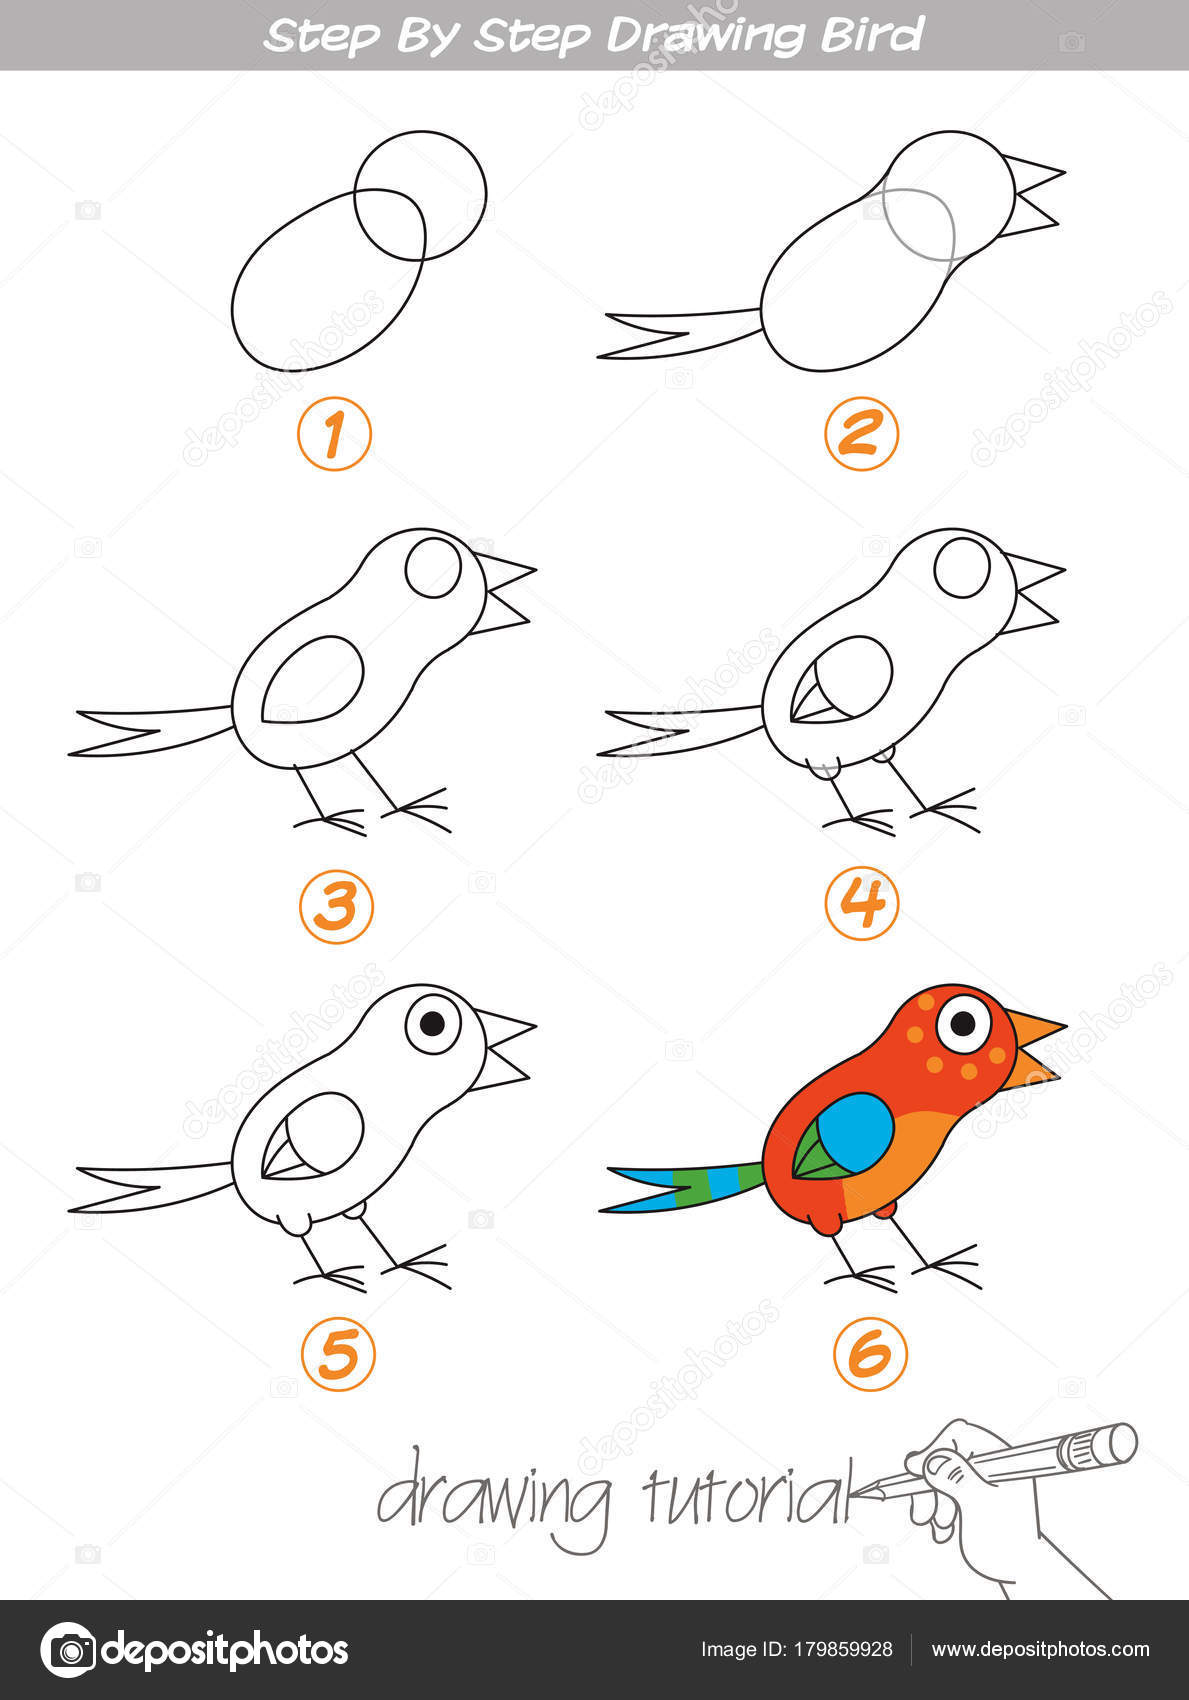 Drawings Drawing Bird Easy Step By Step Drawing Bird Stock